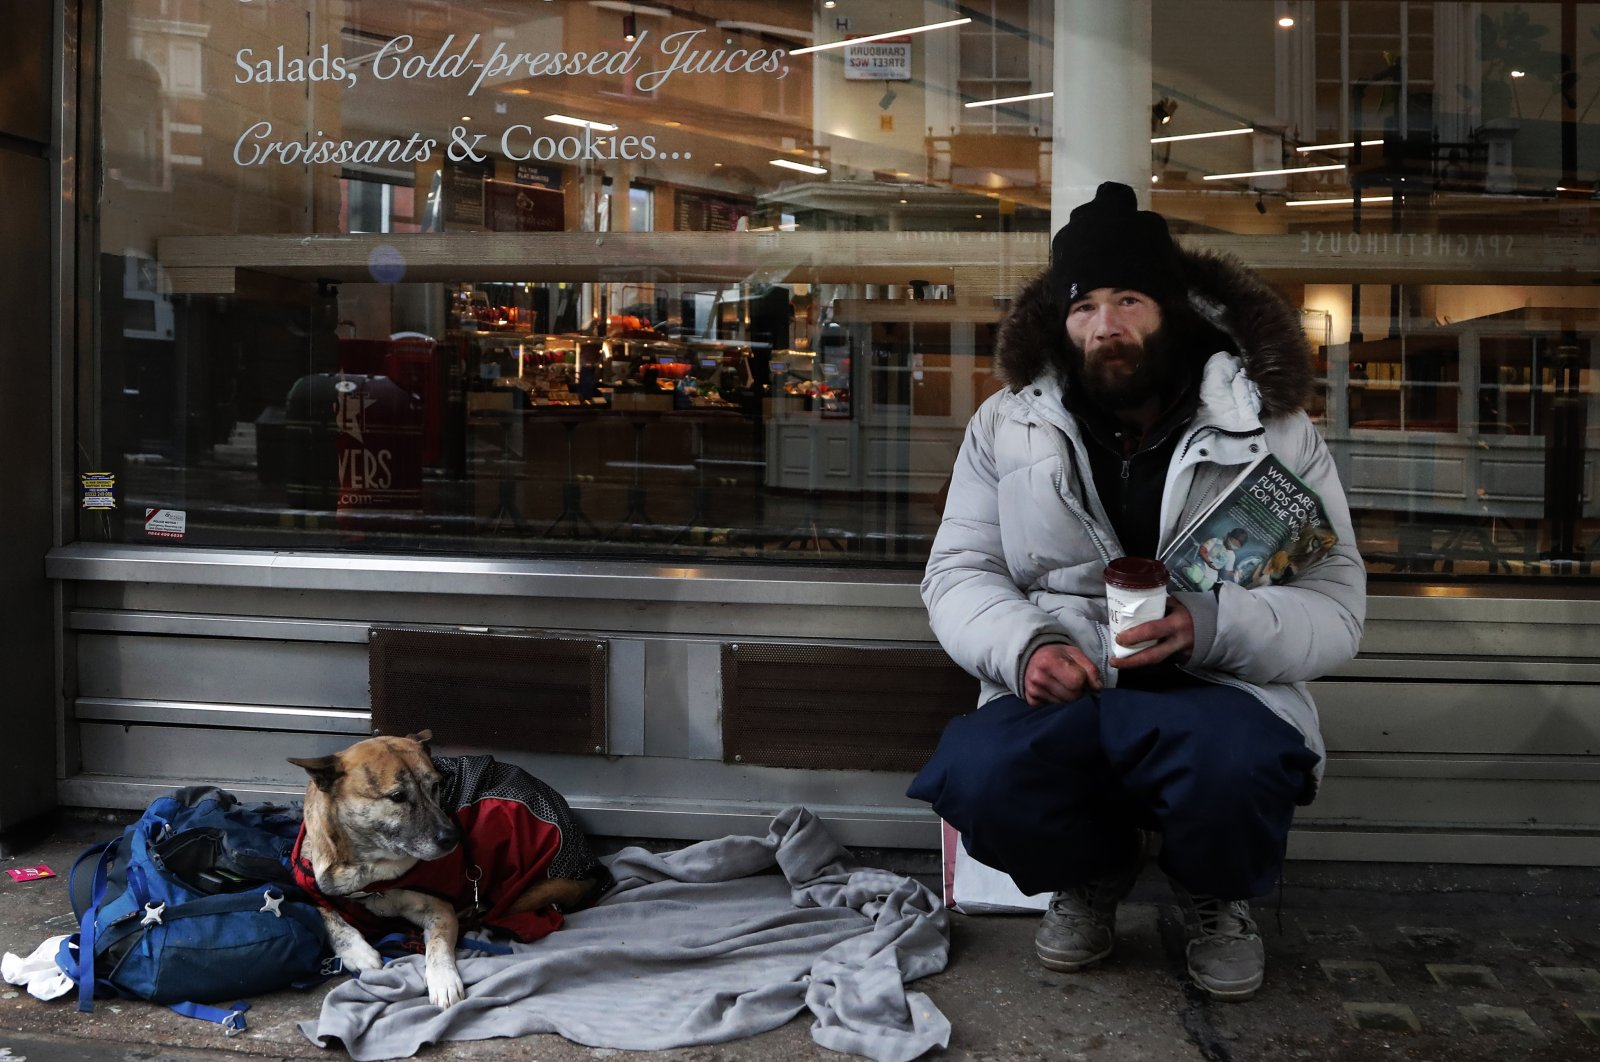 A homeless person and his dog rest outside a coffee shop in London, Feb. 8, 2021. (AP Photo)